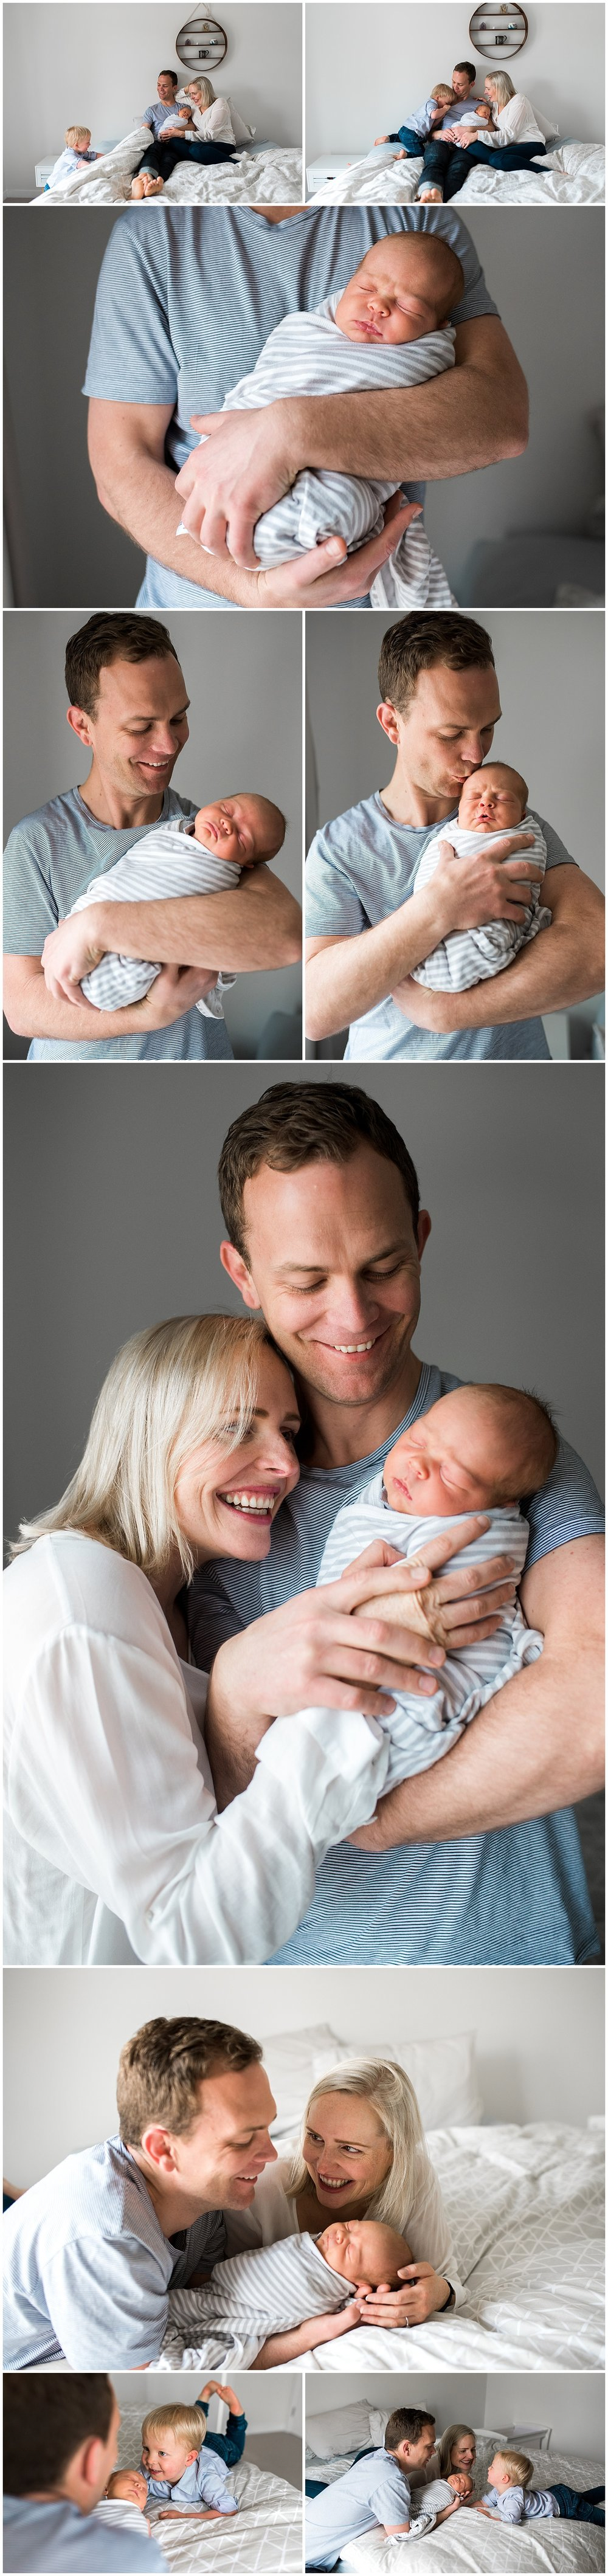 Melbourne Newborn Photographer_0290.jpg